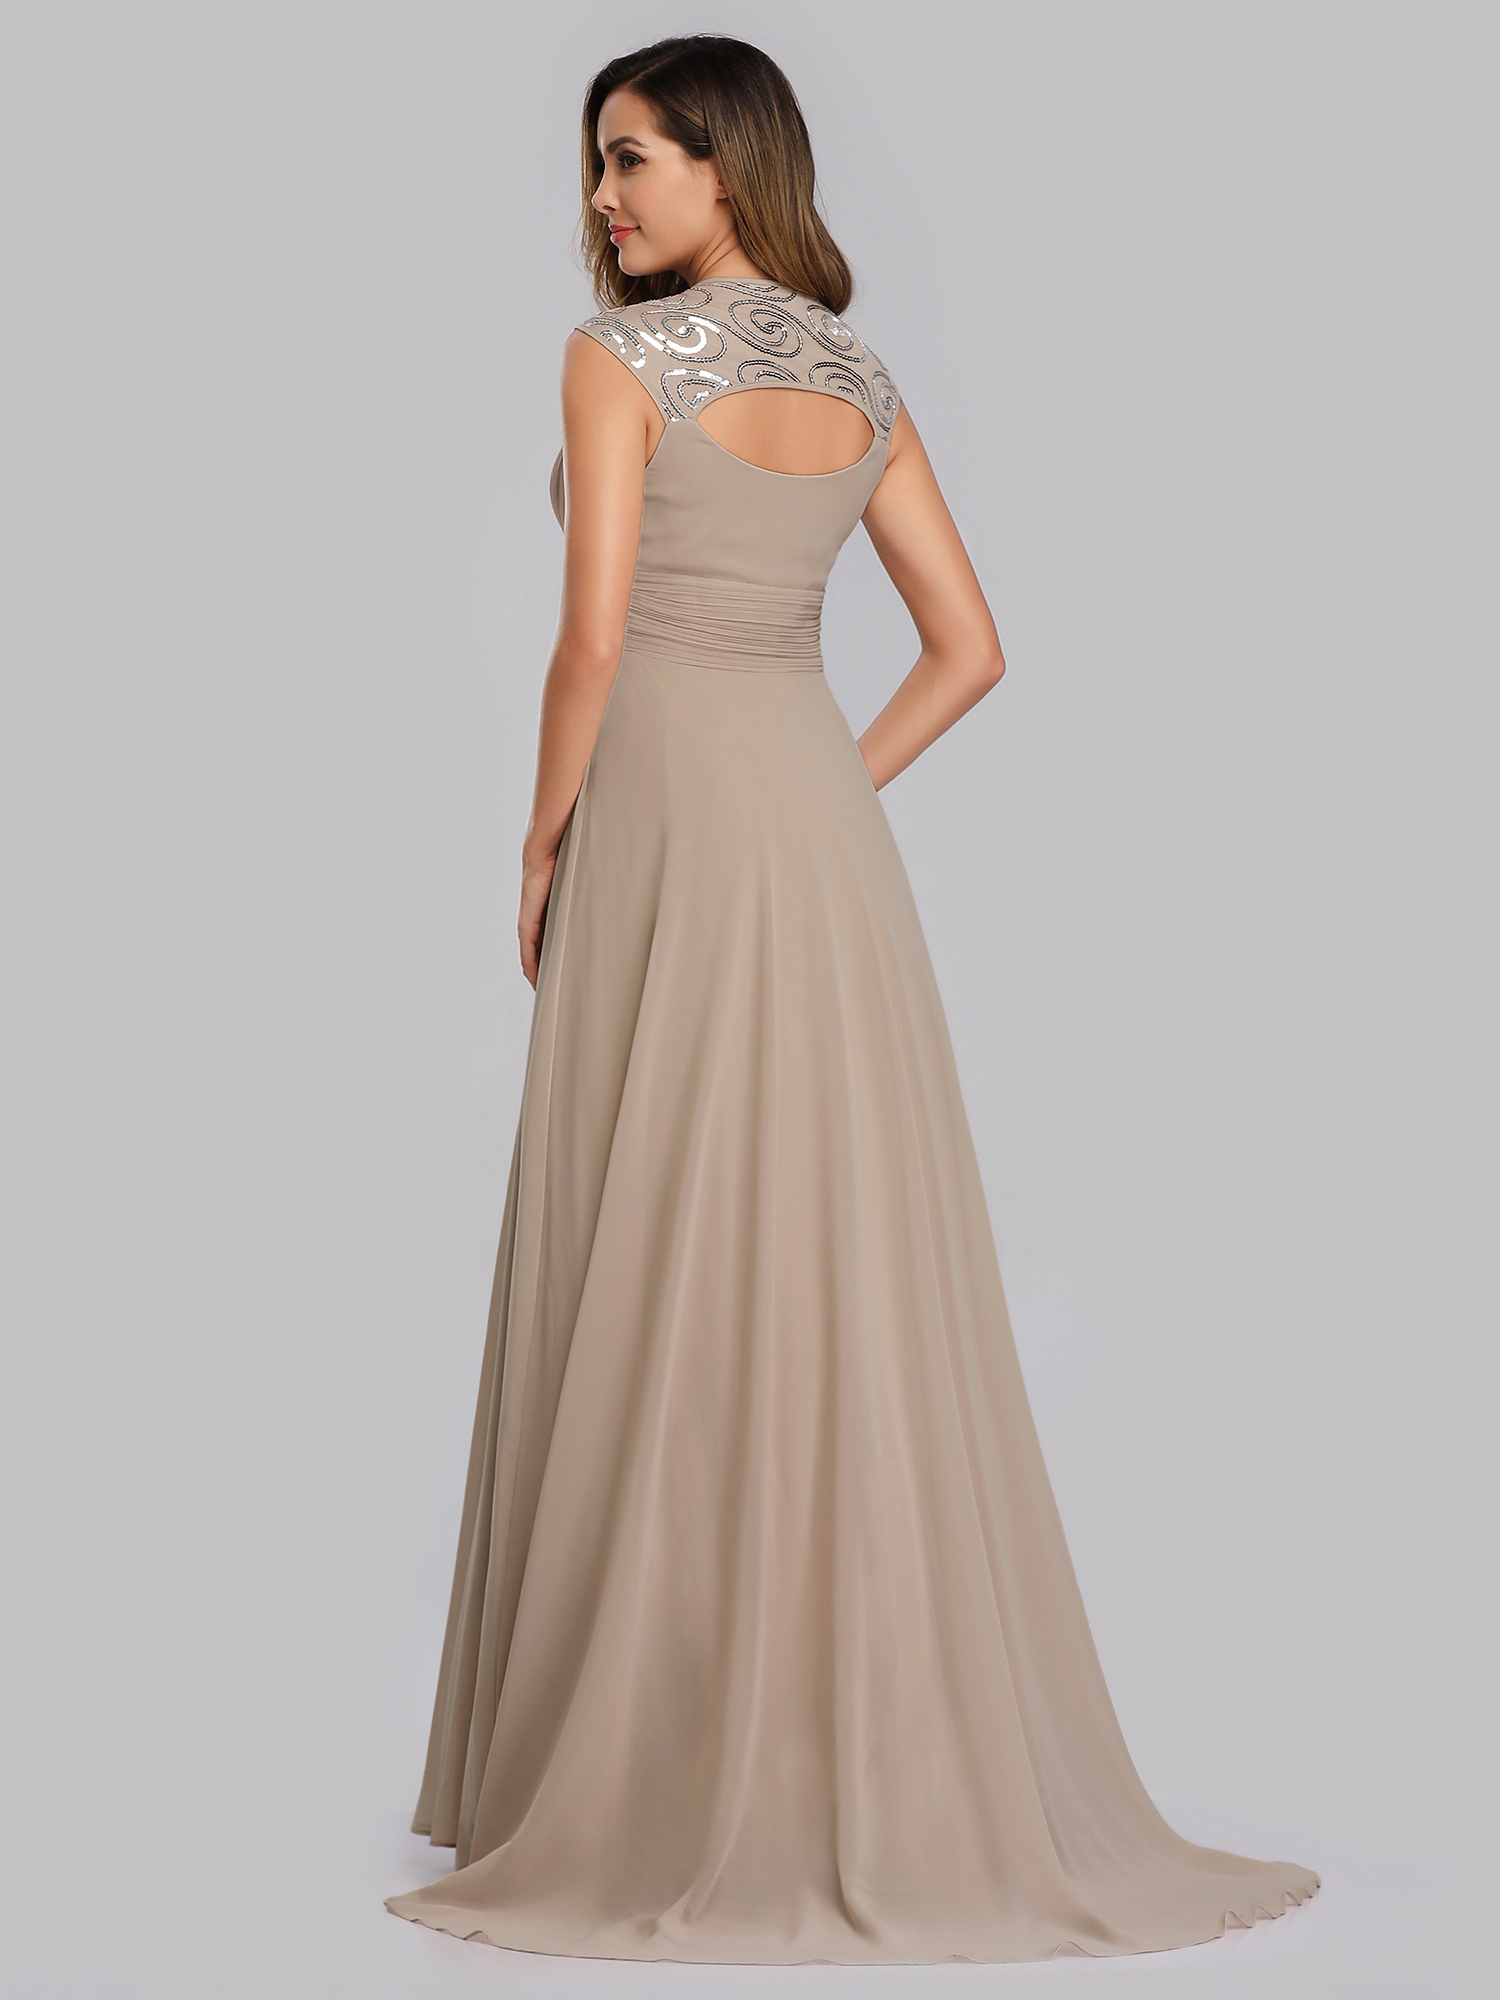 Ever-Pretty-Cap-Sleeve-Bridesmaid-Dresses-Elegant-Long-V-neck-Evening-Gown-09672 thumbnail 28